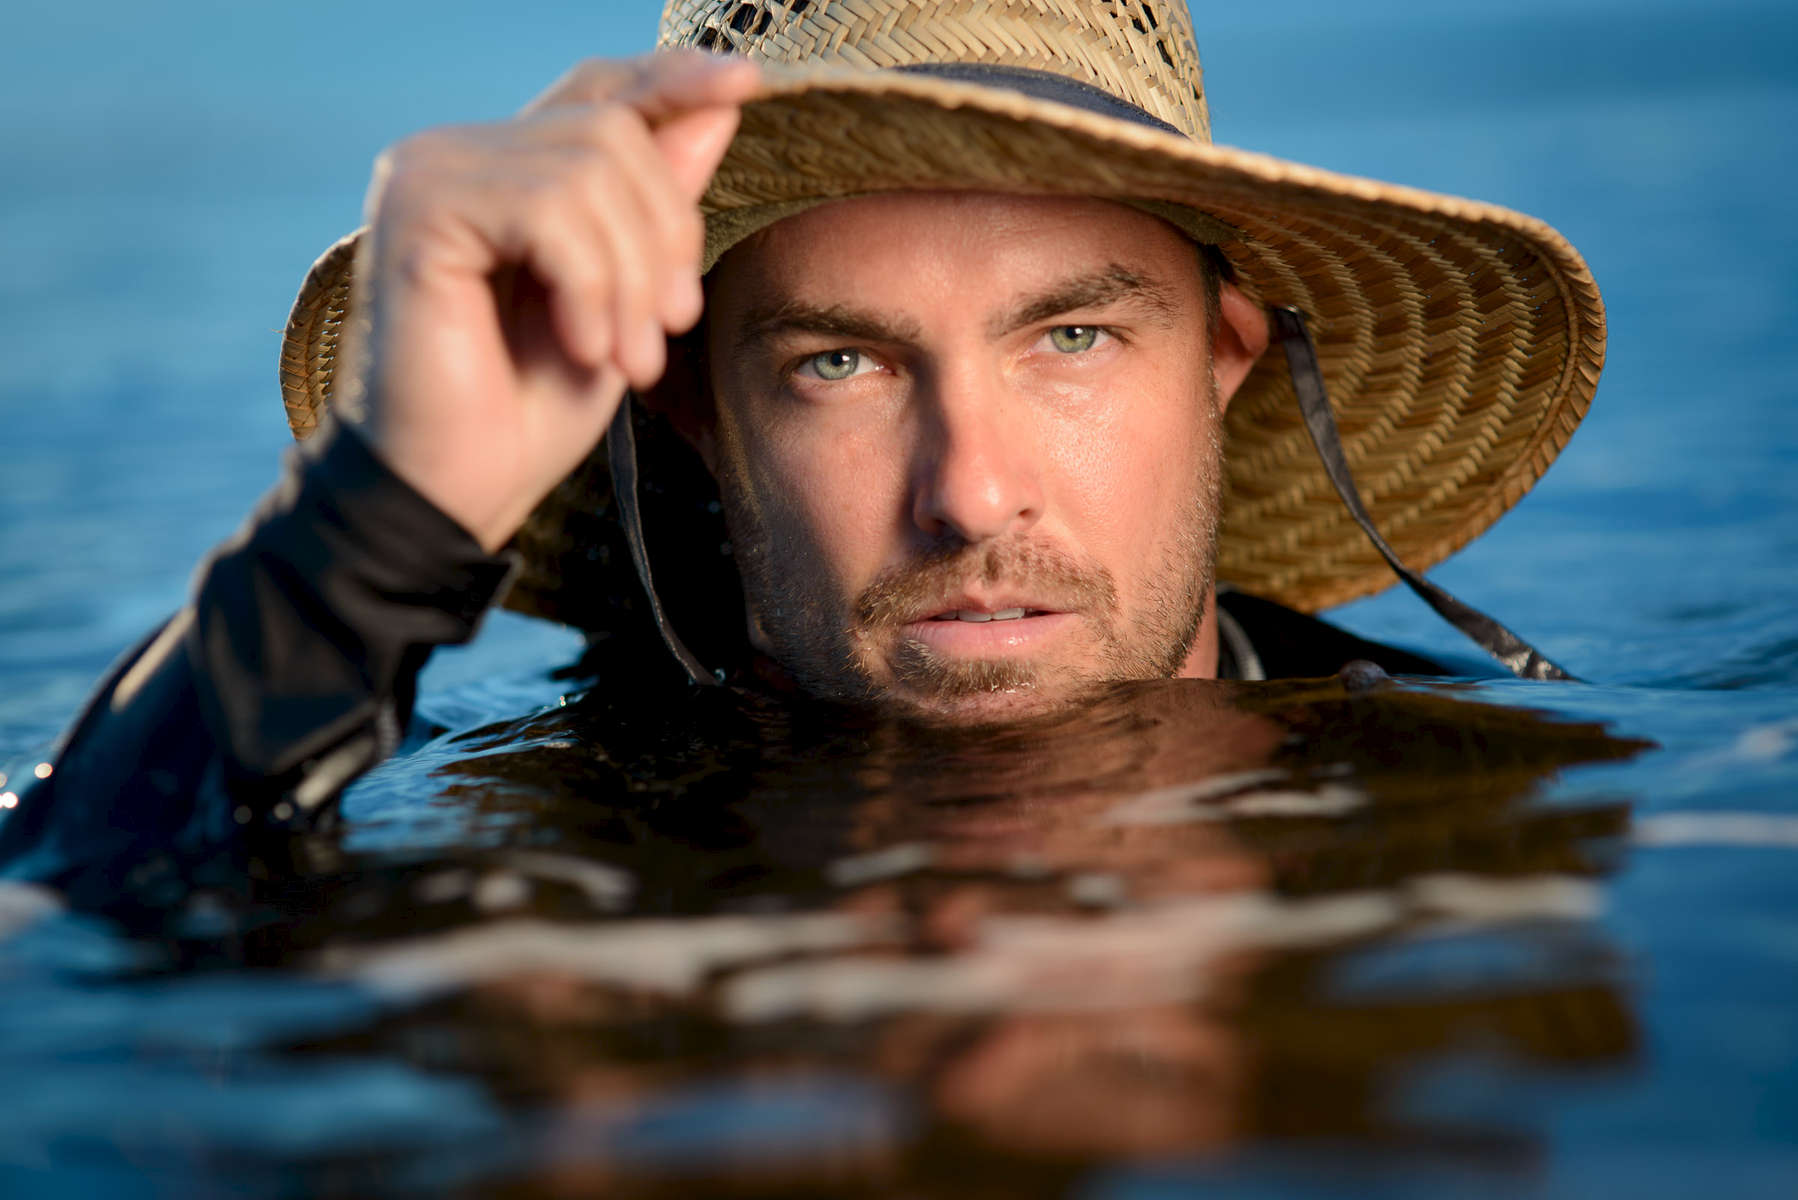 Man in a hat up to his chin in the water.